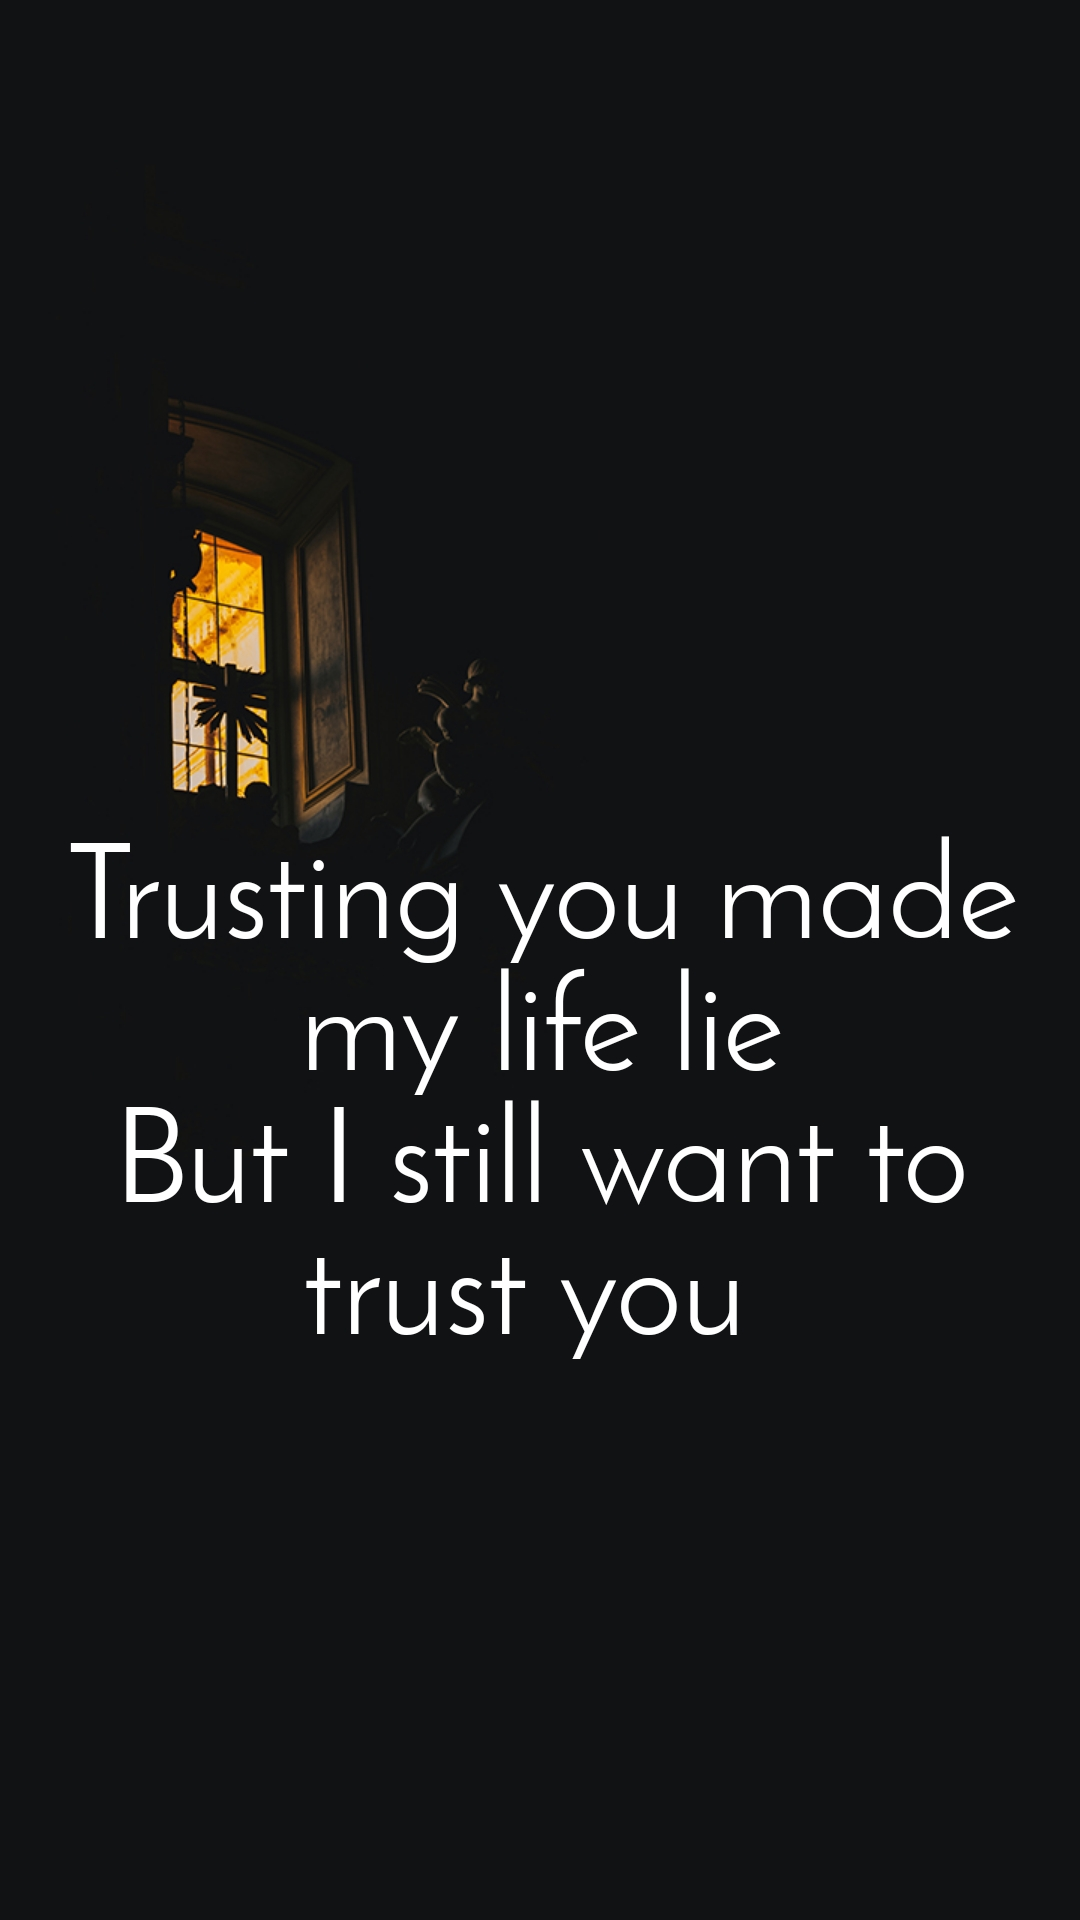 Trusting you made my life lie But I still want to trust you